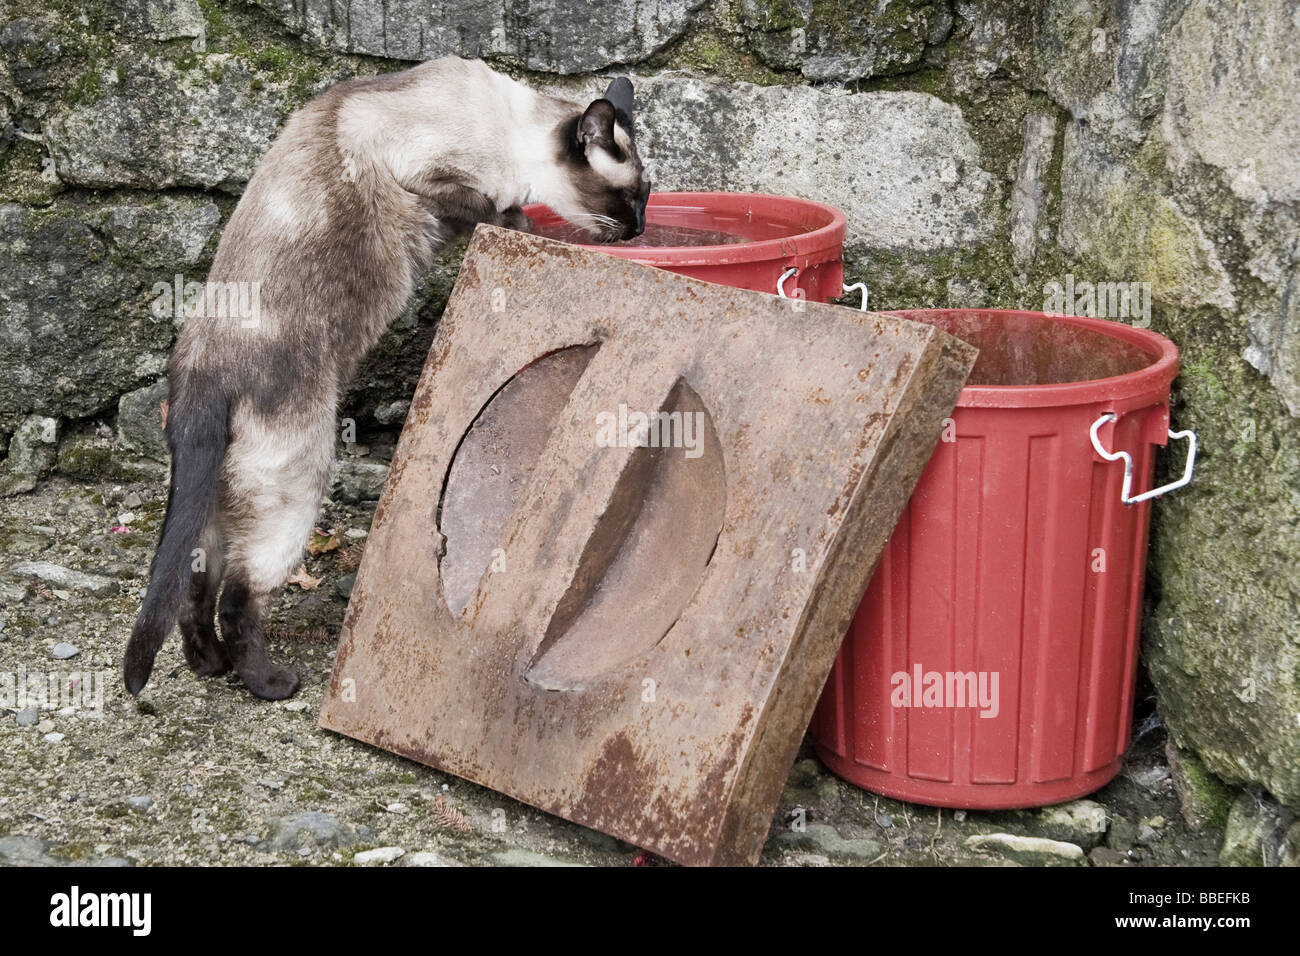 cat drinking water from trash cans - Stock Image